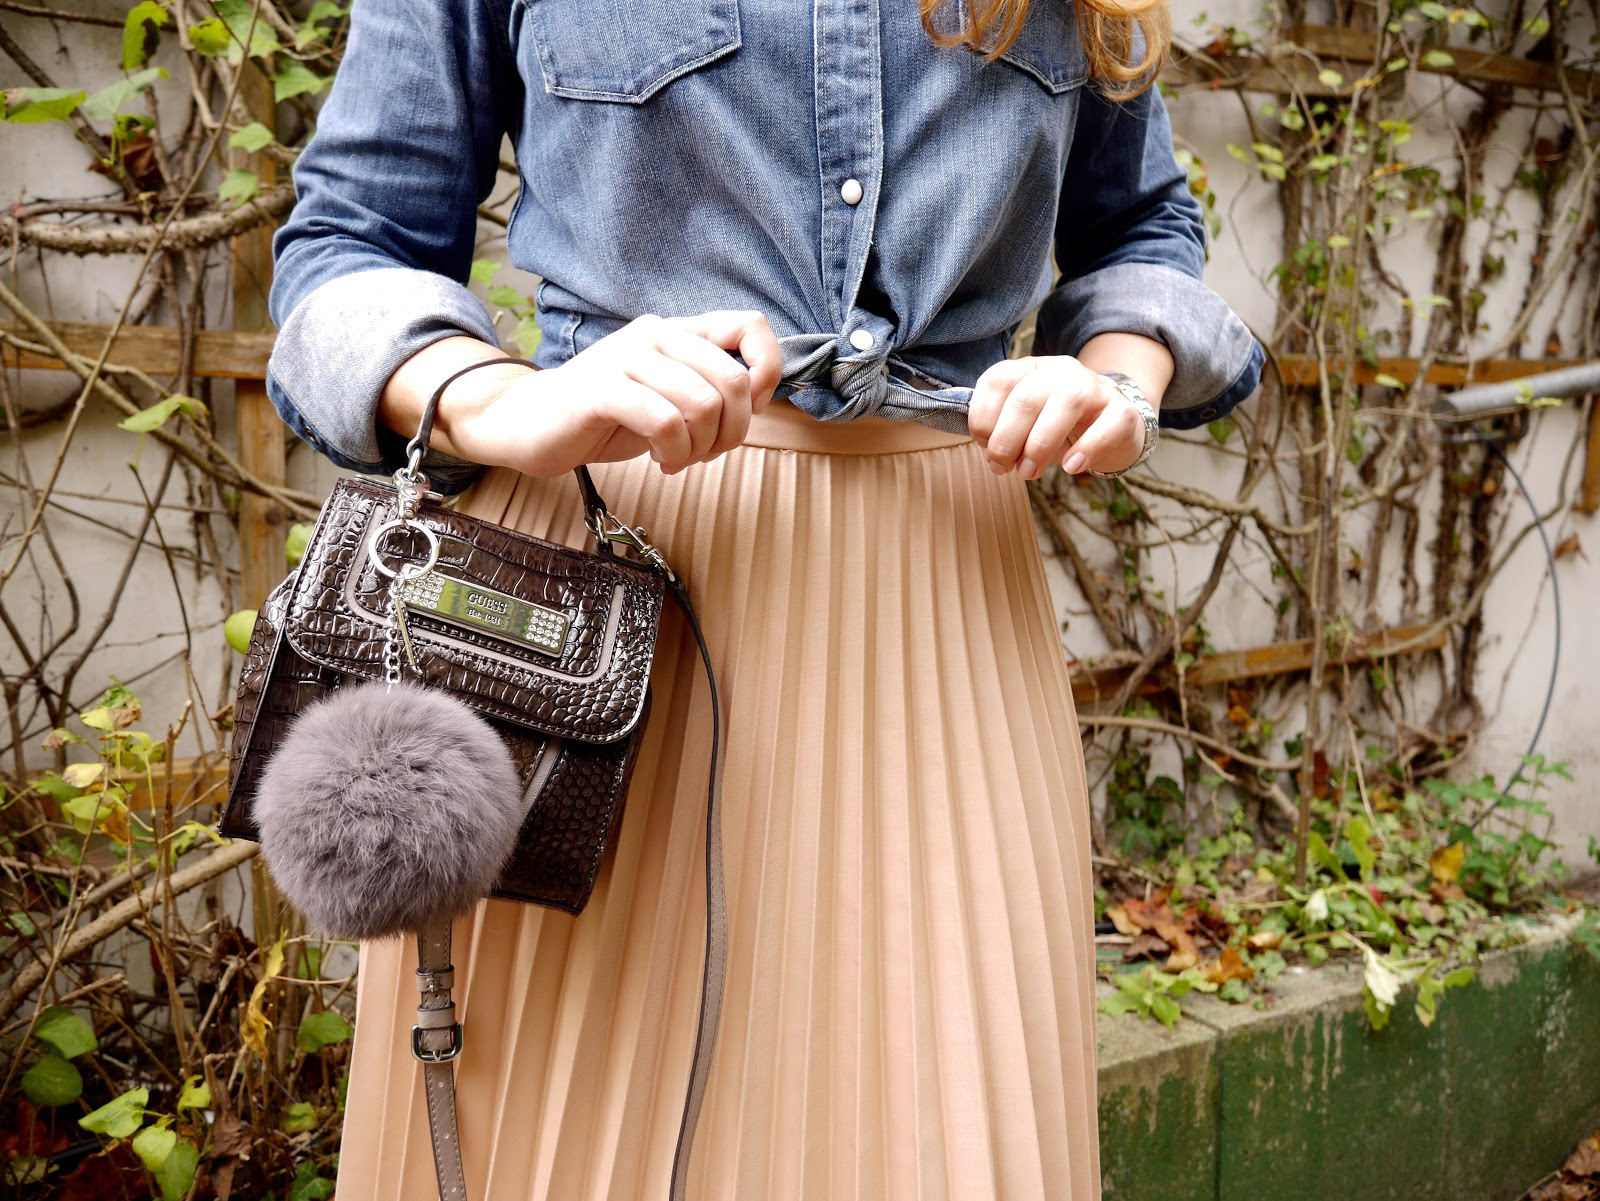 De mayor quiero ser egoblogger, fashion, egoblogger, street style, pleated skirt Zara, falda plisada Zara, blogger de moda, fashion blogger, Guess bag, furry charm